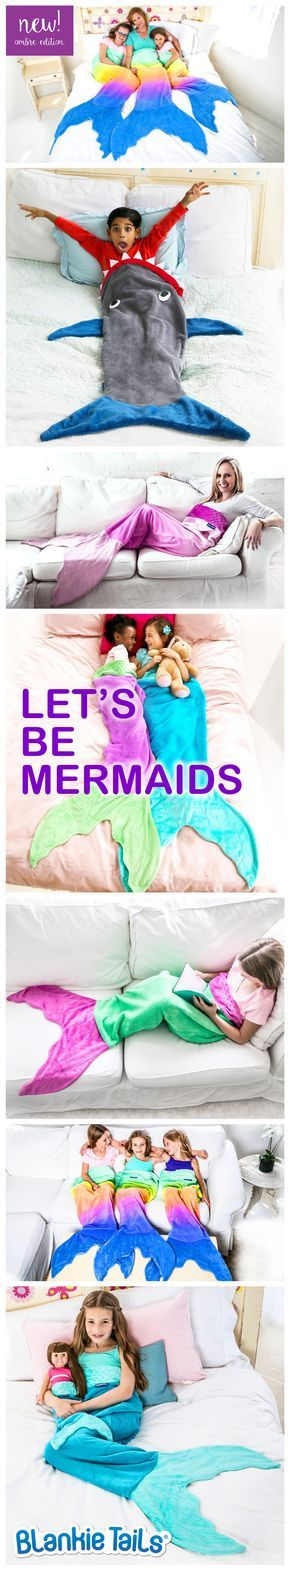 Climb inside the colorful-coziness of our NEW Limited Edition Ombre Blankie Tails®! Feel like Ariel from the little mermaid in our MERMAZING Ombre Blankie Tails® or Be JAWESOME in our signature Shark Blanket! Made from premium grade, super soft, double sided minky fleece with minky dot embellishments around the top, and a gorgeously sewn tail, which you can slide your feet into, Blankie Tails® are perfect for cozy fun at home or on the go!  #thesnuggleisreal